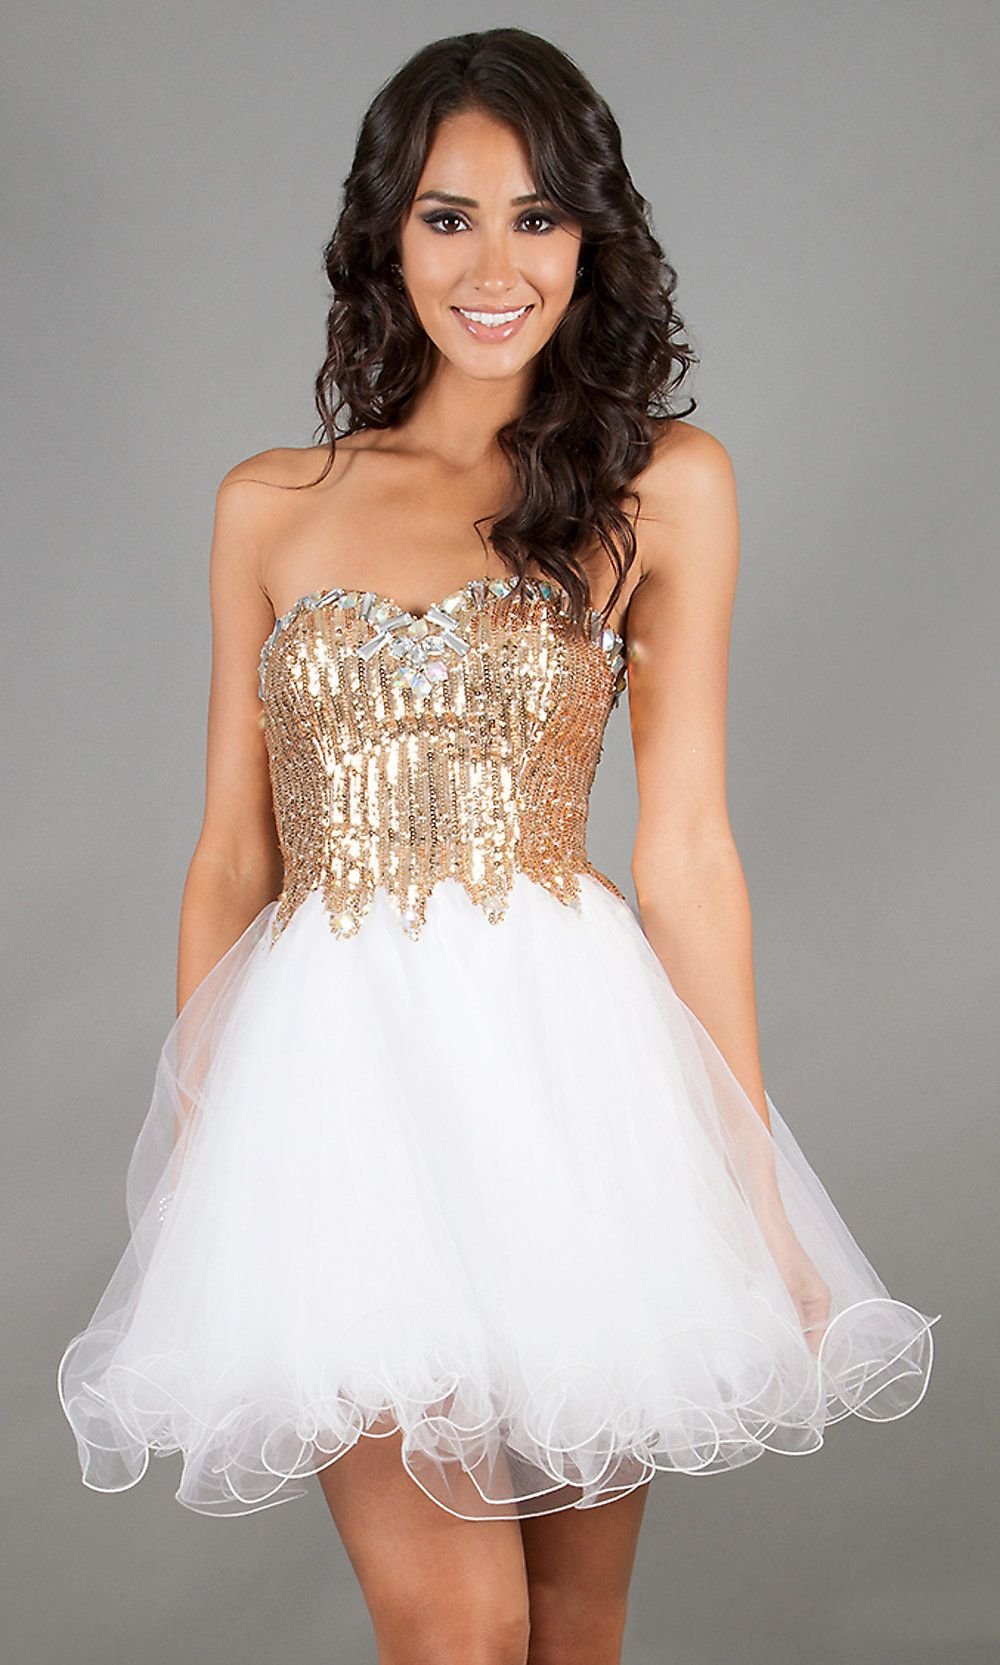 Sparkling Short White Gold Sequin Homecoming Dress Lace Up Back